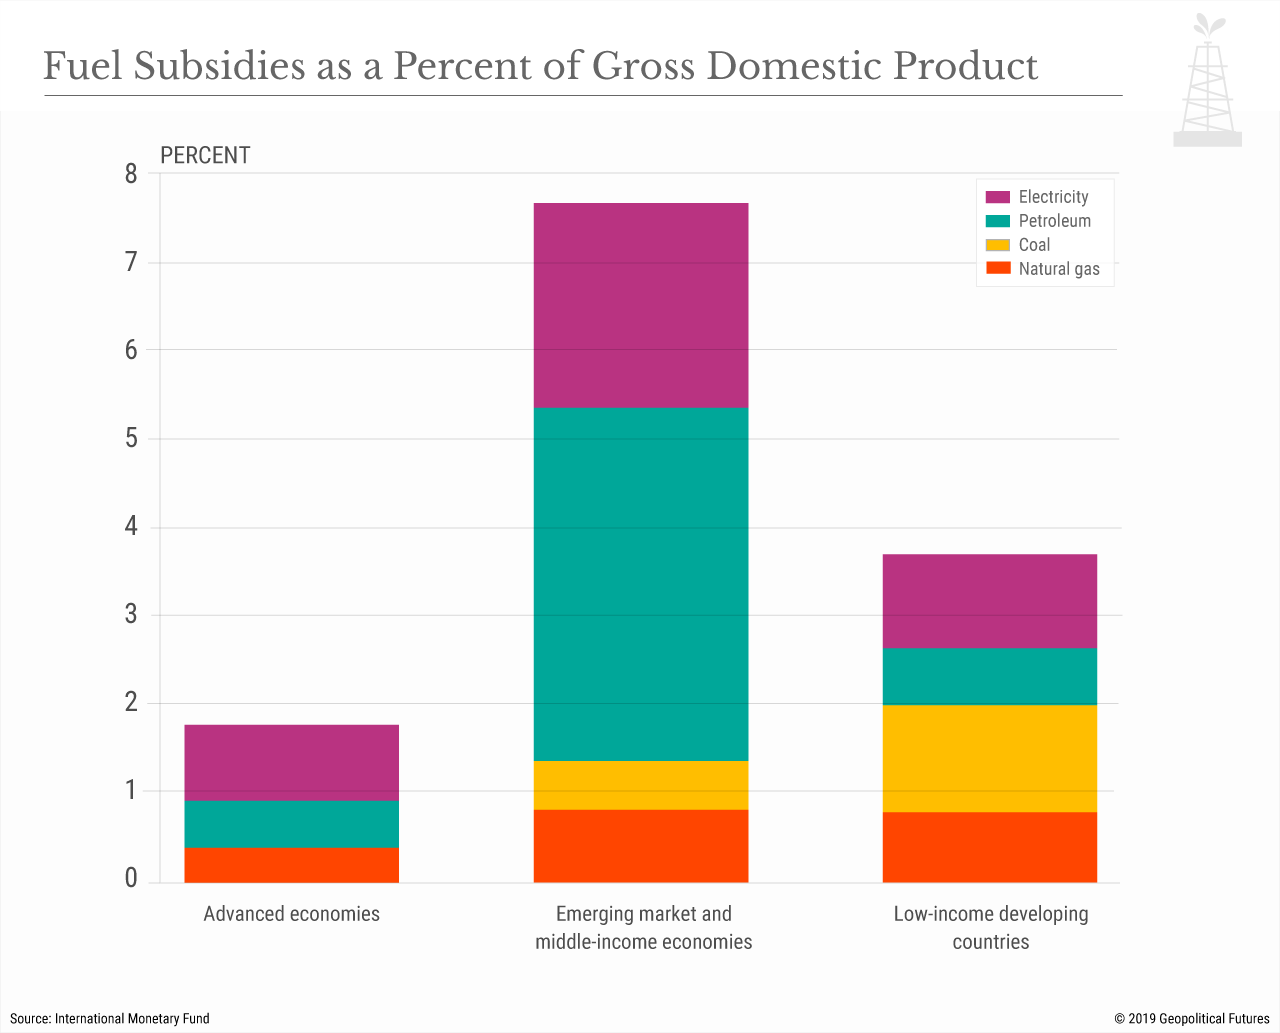 Fuel Subsidies as a Percent of Gross Domestic Product